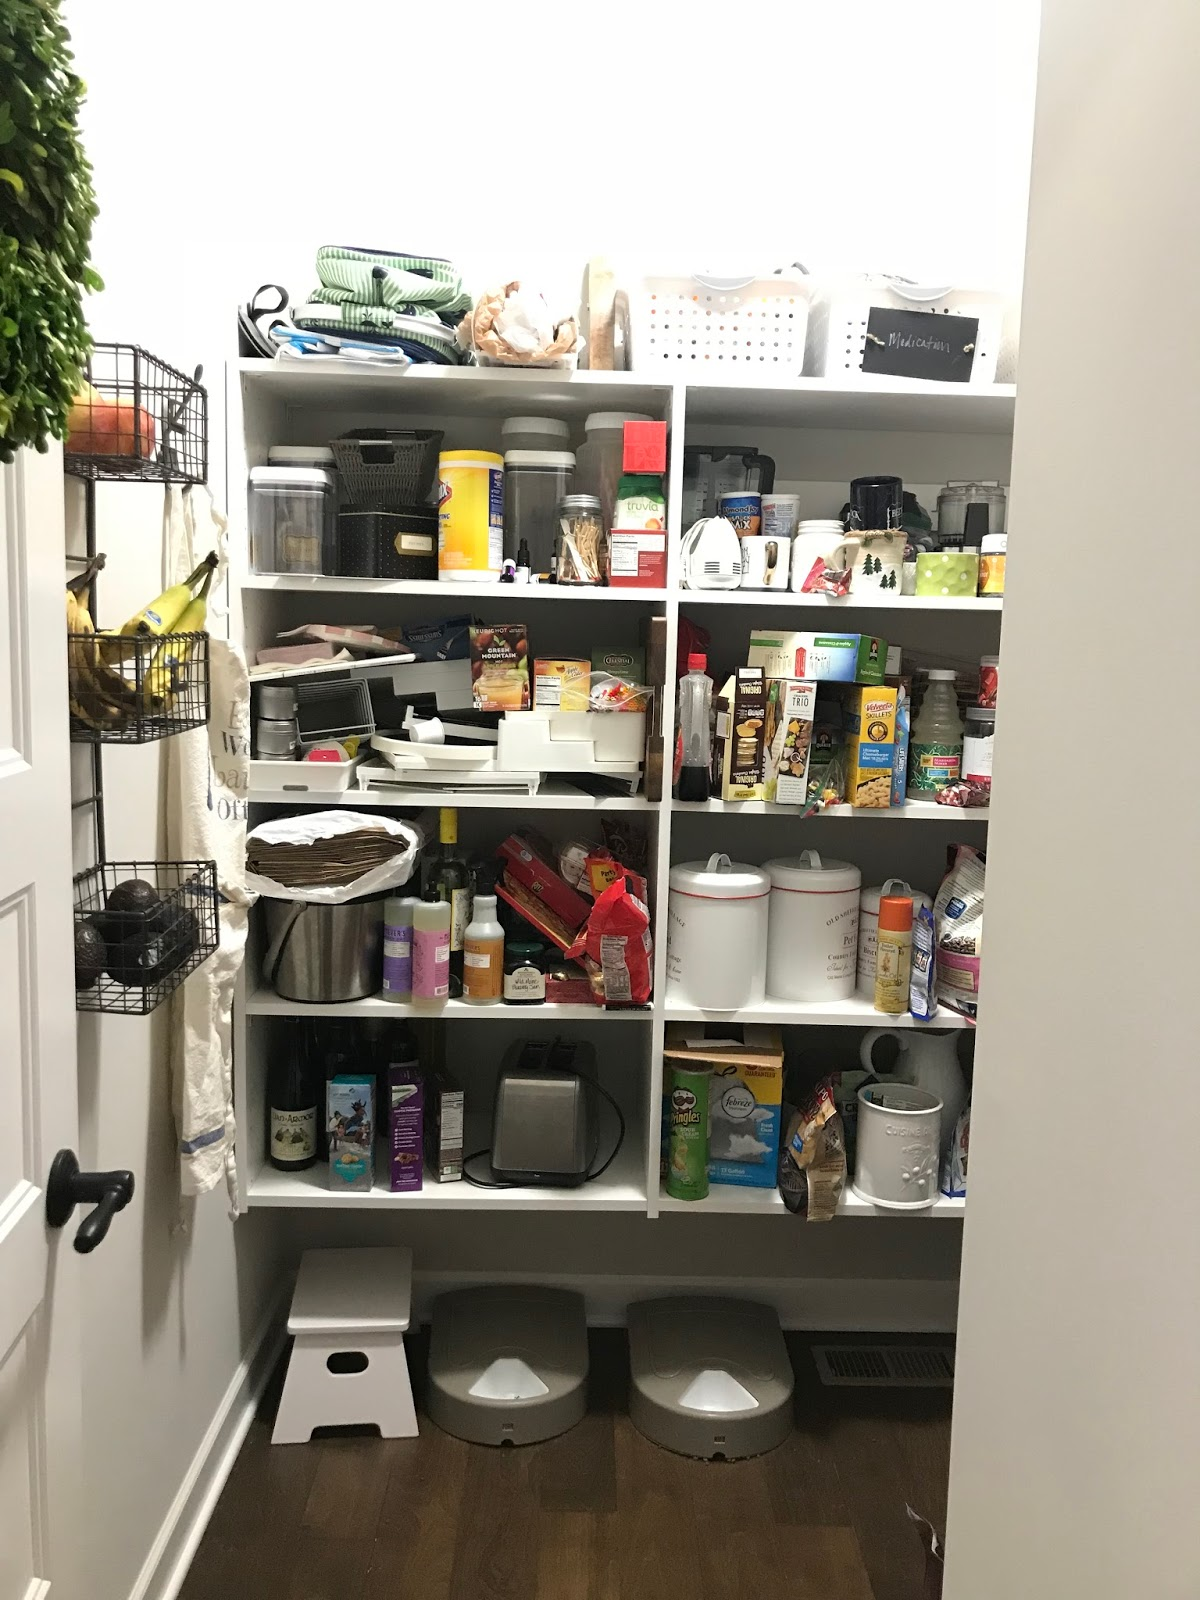 Messy pantry before and after